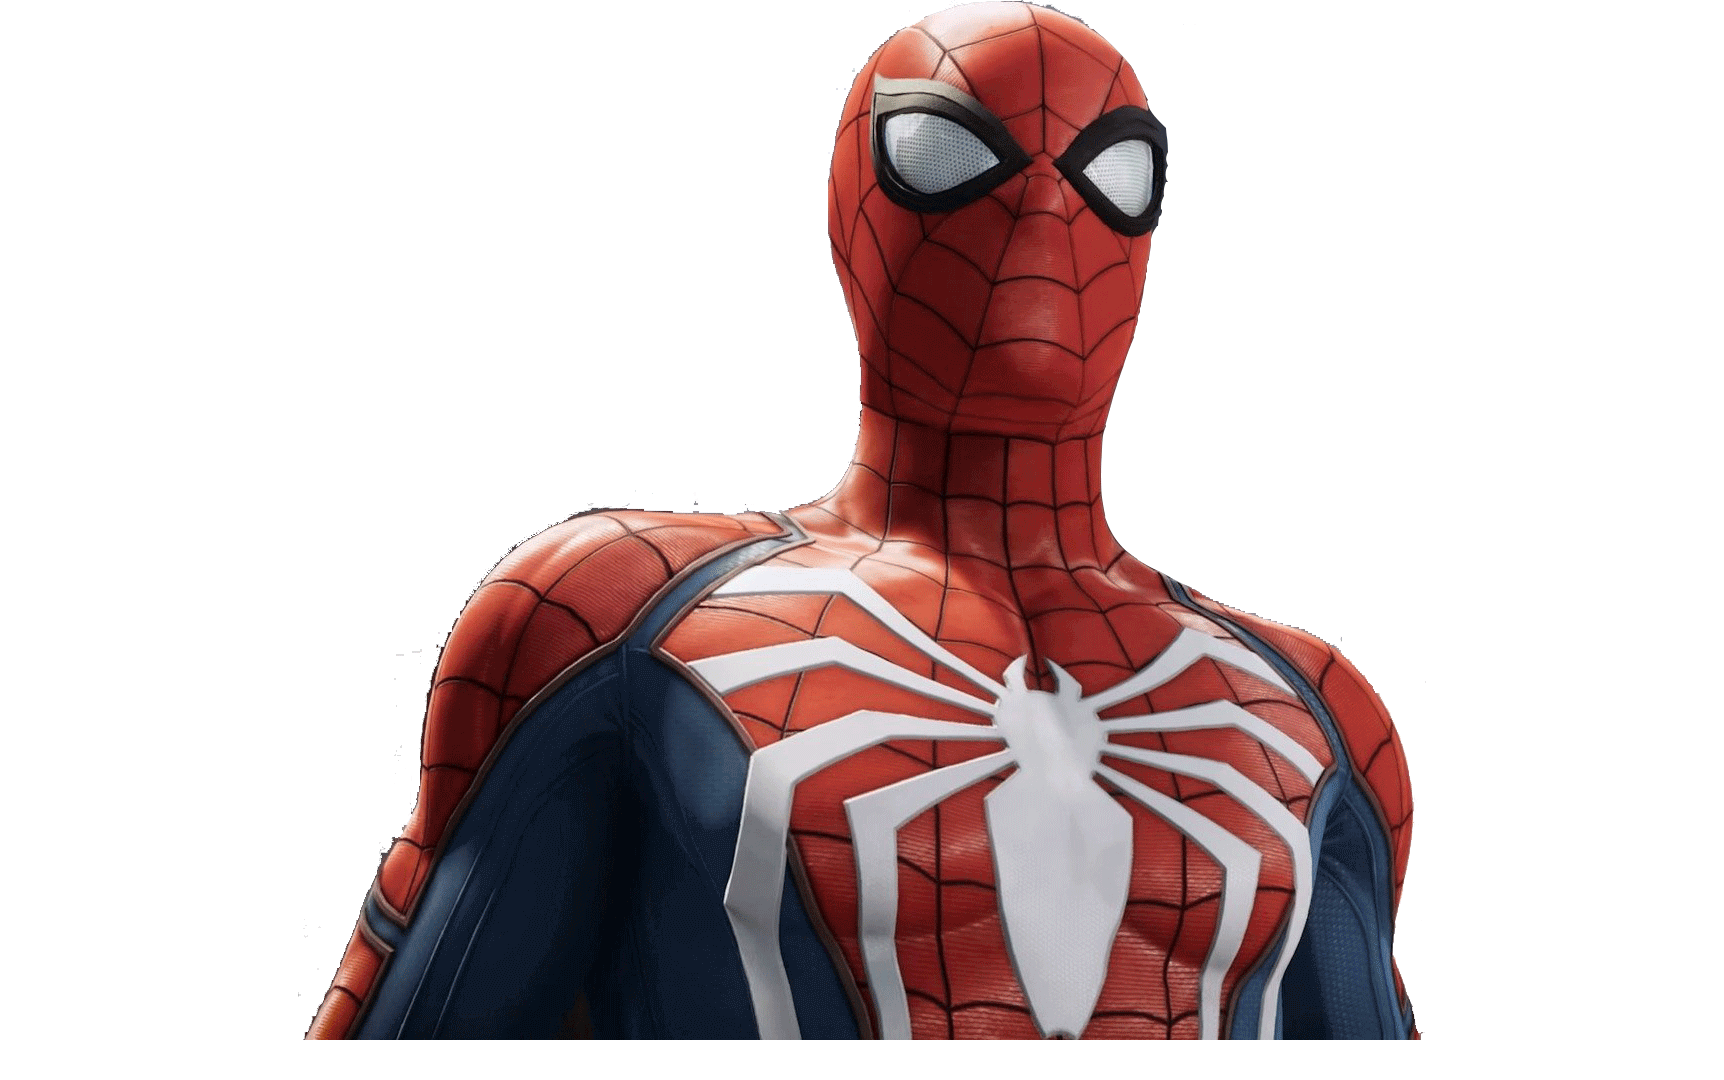 Spiderman ps4 png. Ps image transparent hd